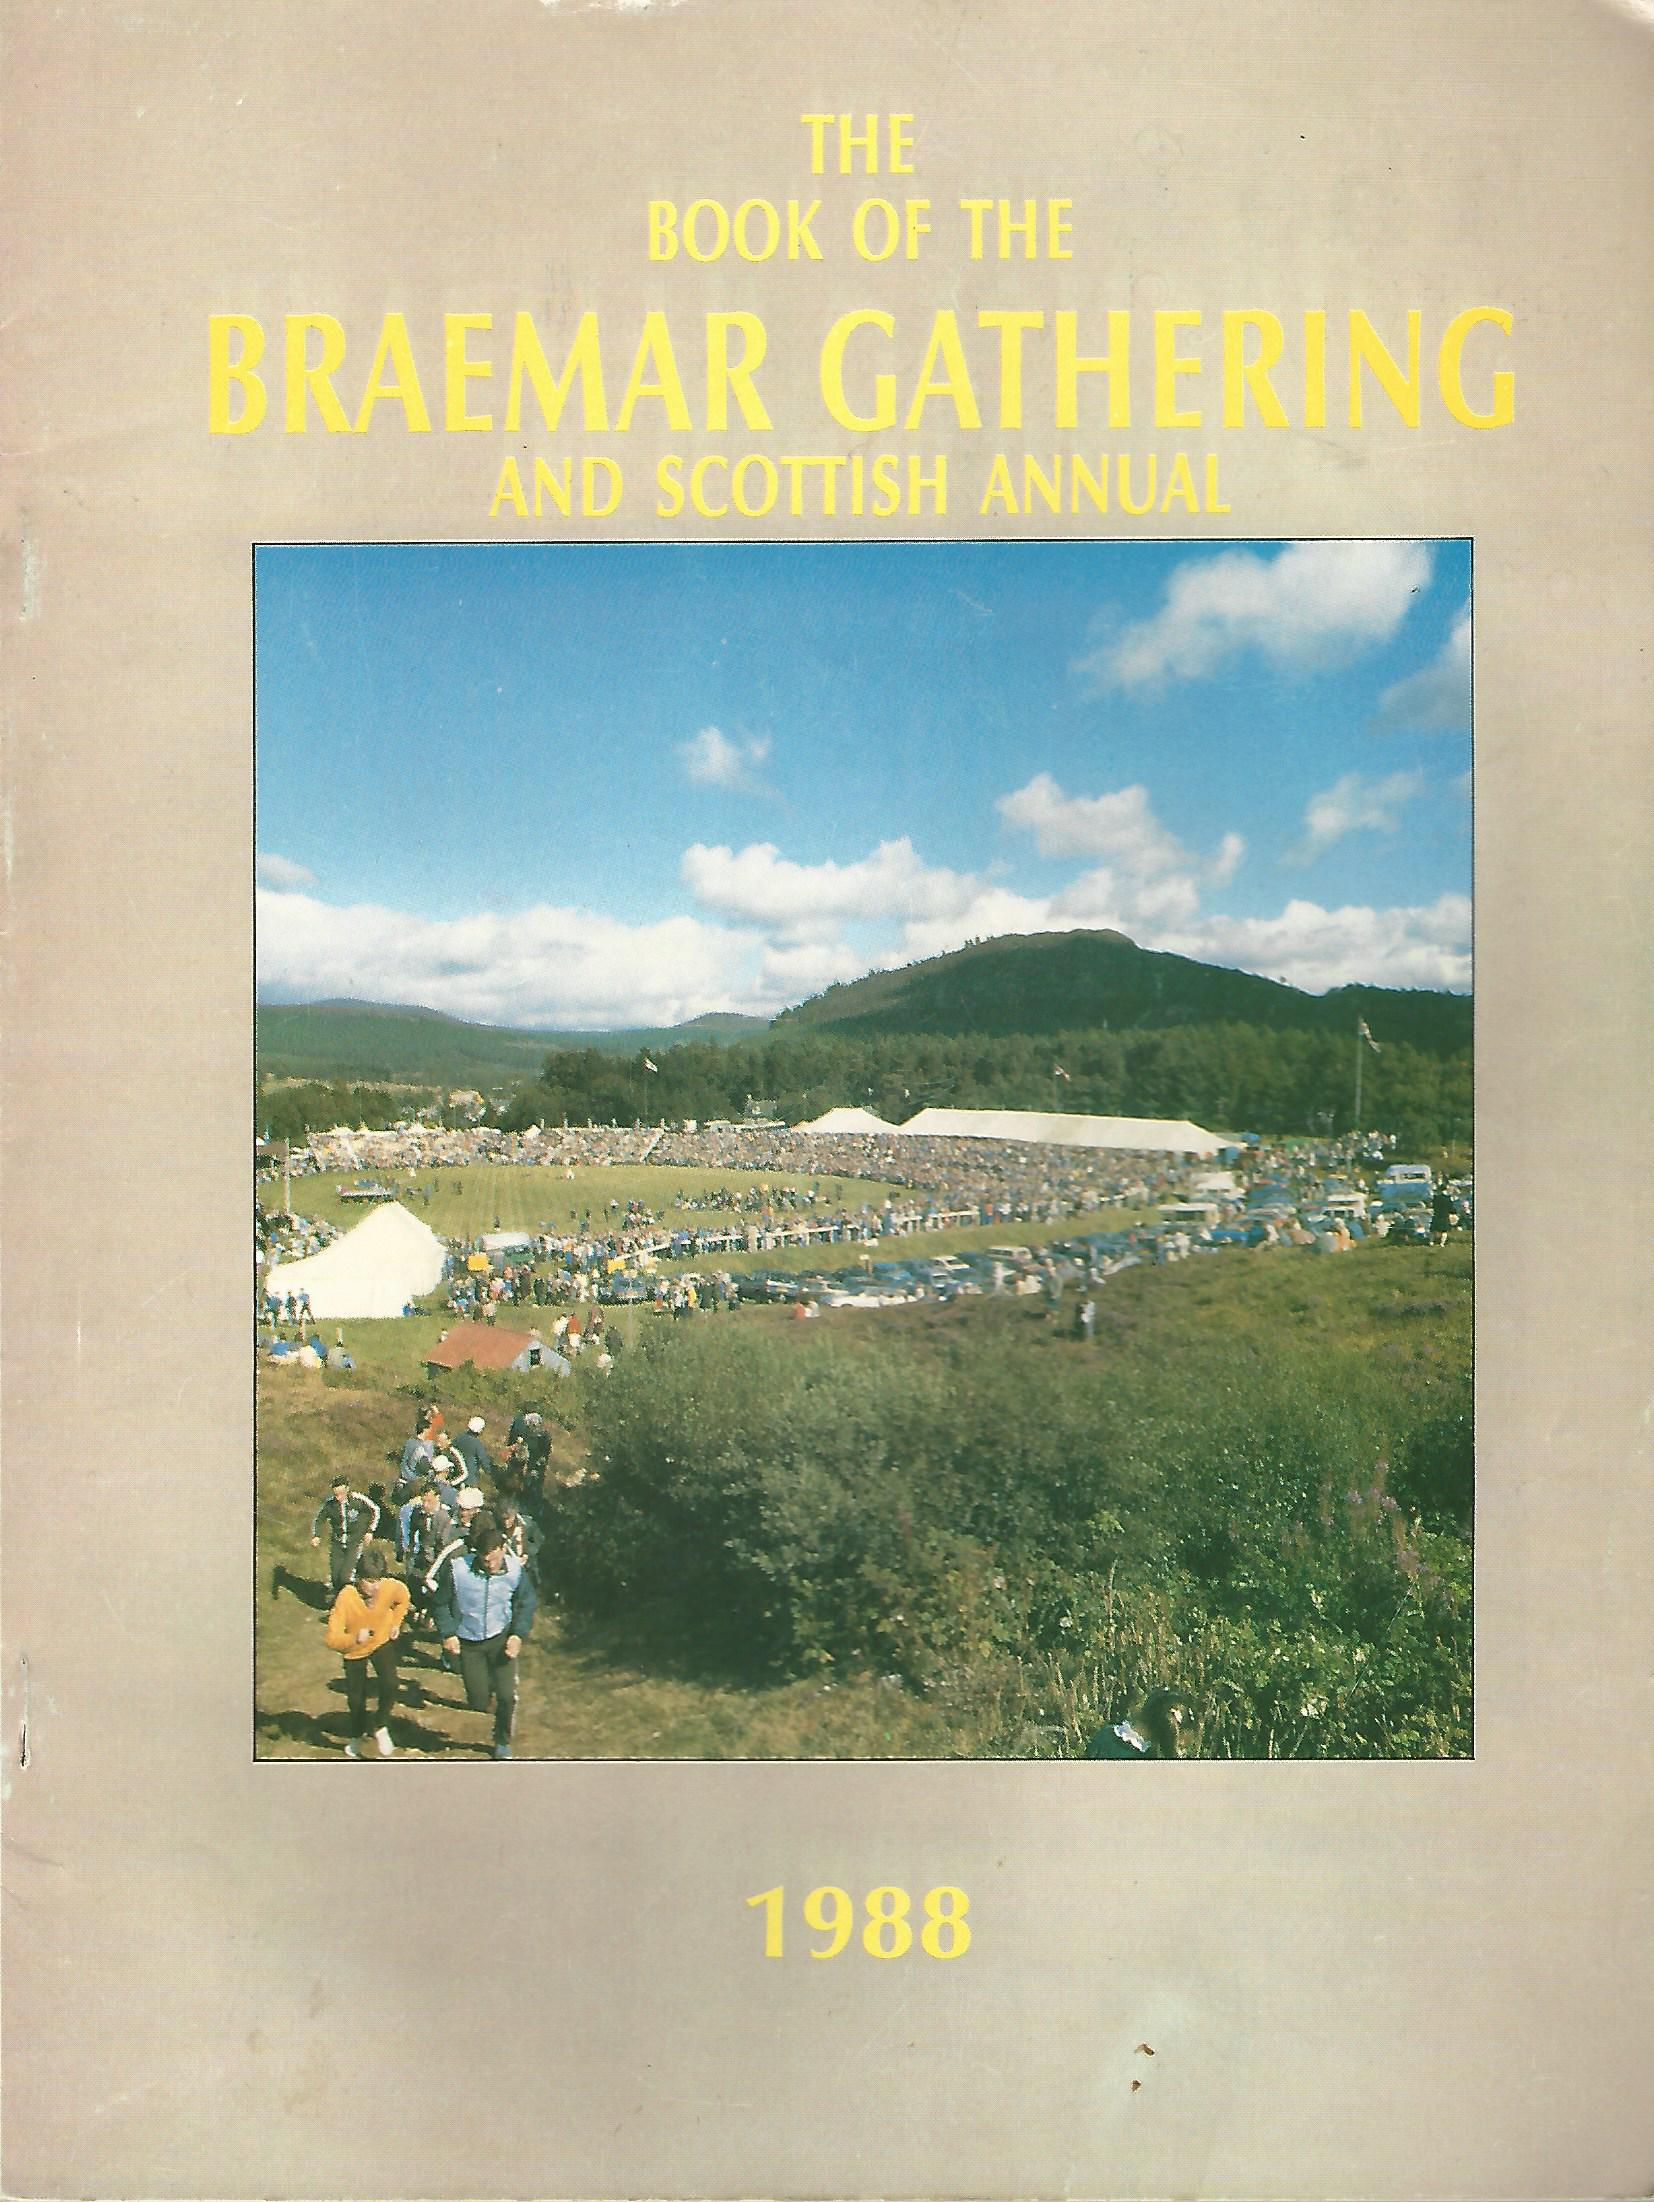 Image for The Book of the Braemar Gathering, 1988.